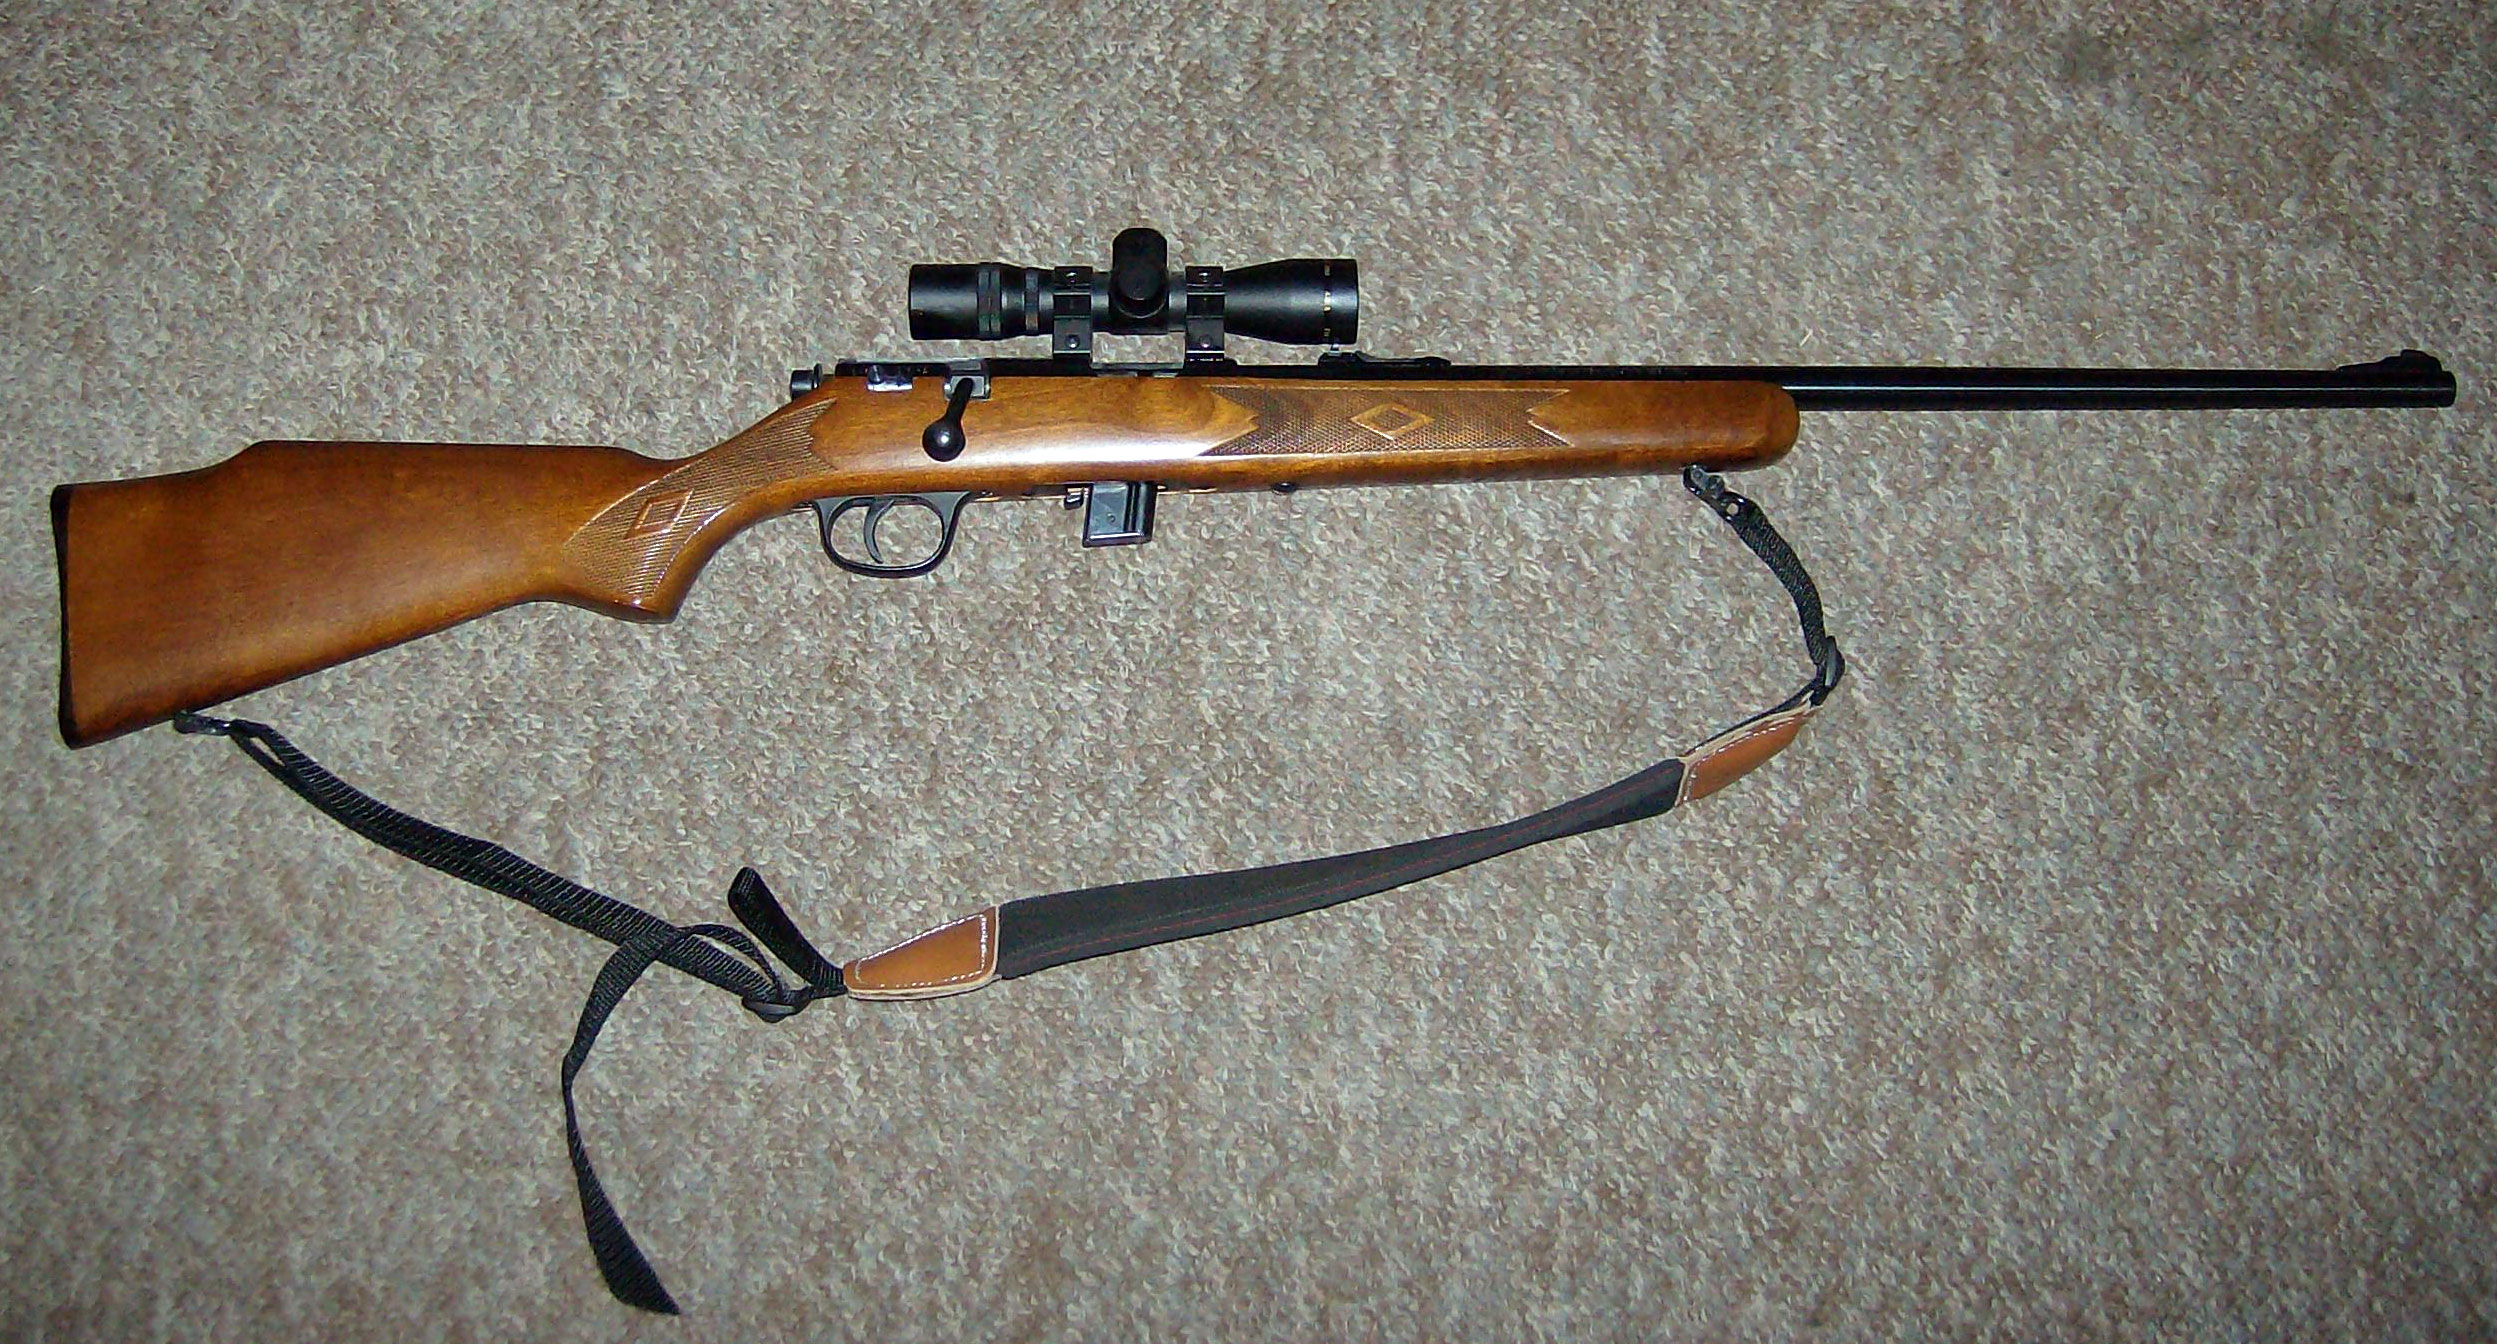 weatherby mature singles Shooting lipsey's exclusive ruger no 1 single-shot 257 weatherby magnum the ruger no 1 single-shot is one of my favorite rifles.